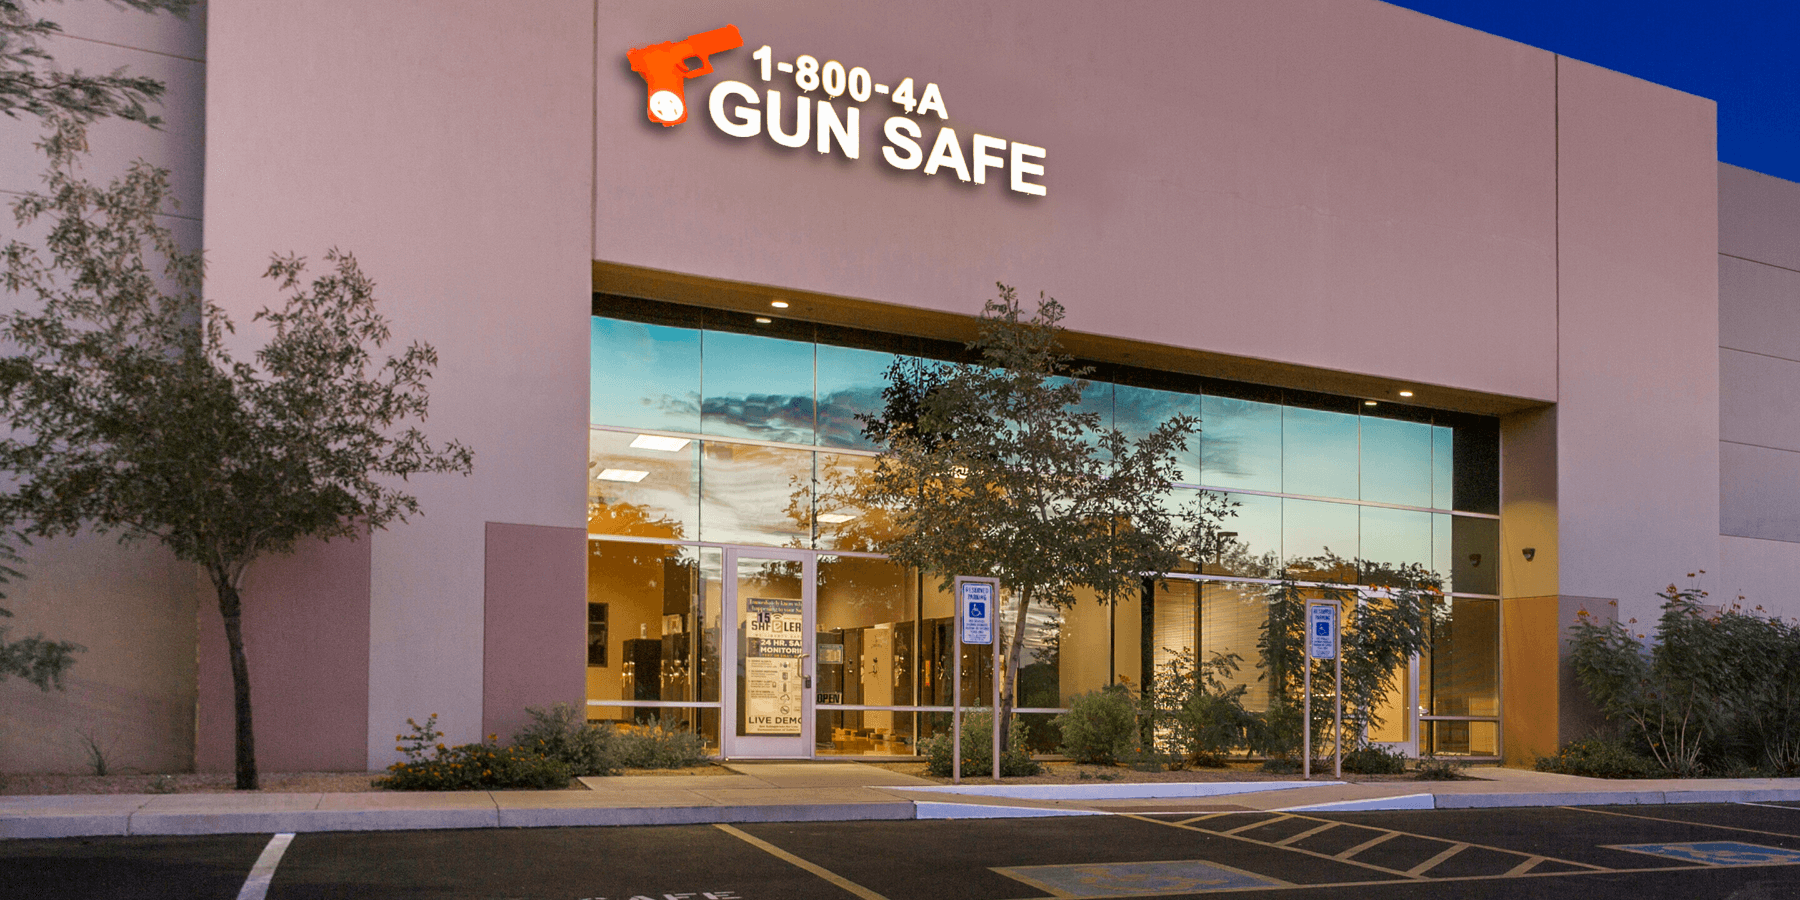 800 4 a gun safe showroom